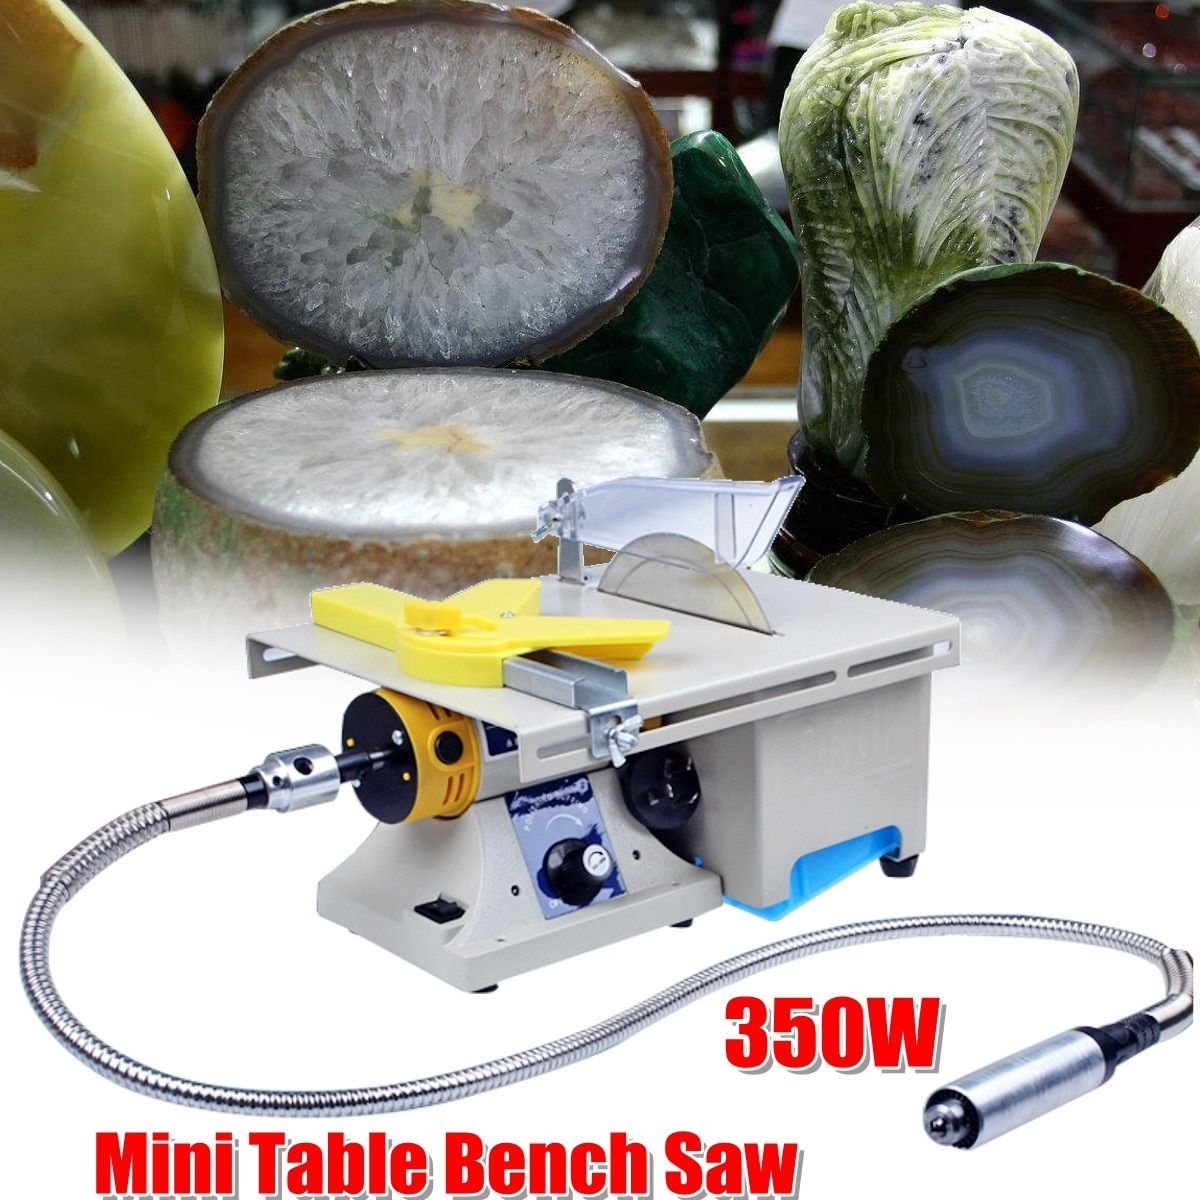 350W Mini Table Bench Saw Electric Grinding Engraving Machine Jade Wood Stone Polishing For Bodhi Ivory Carving Polisher